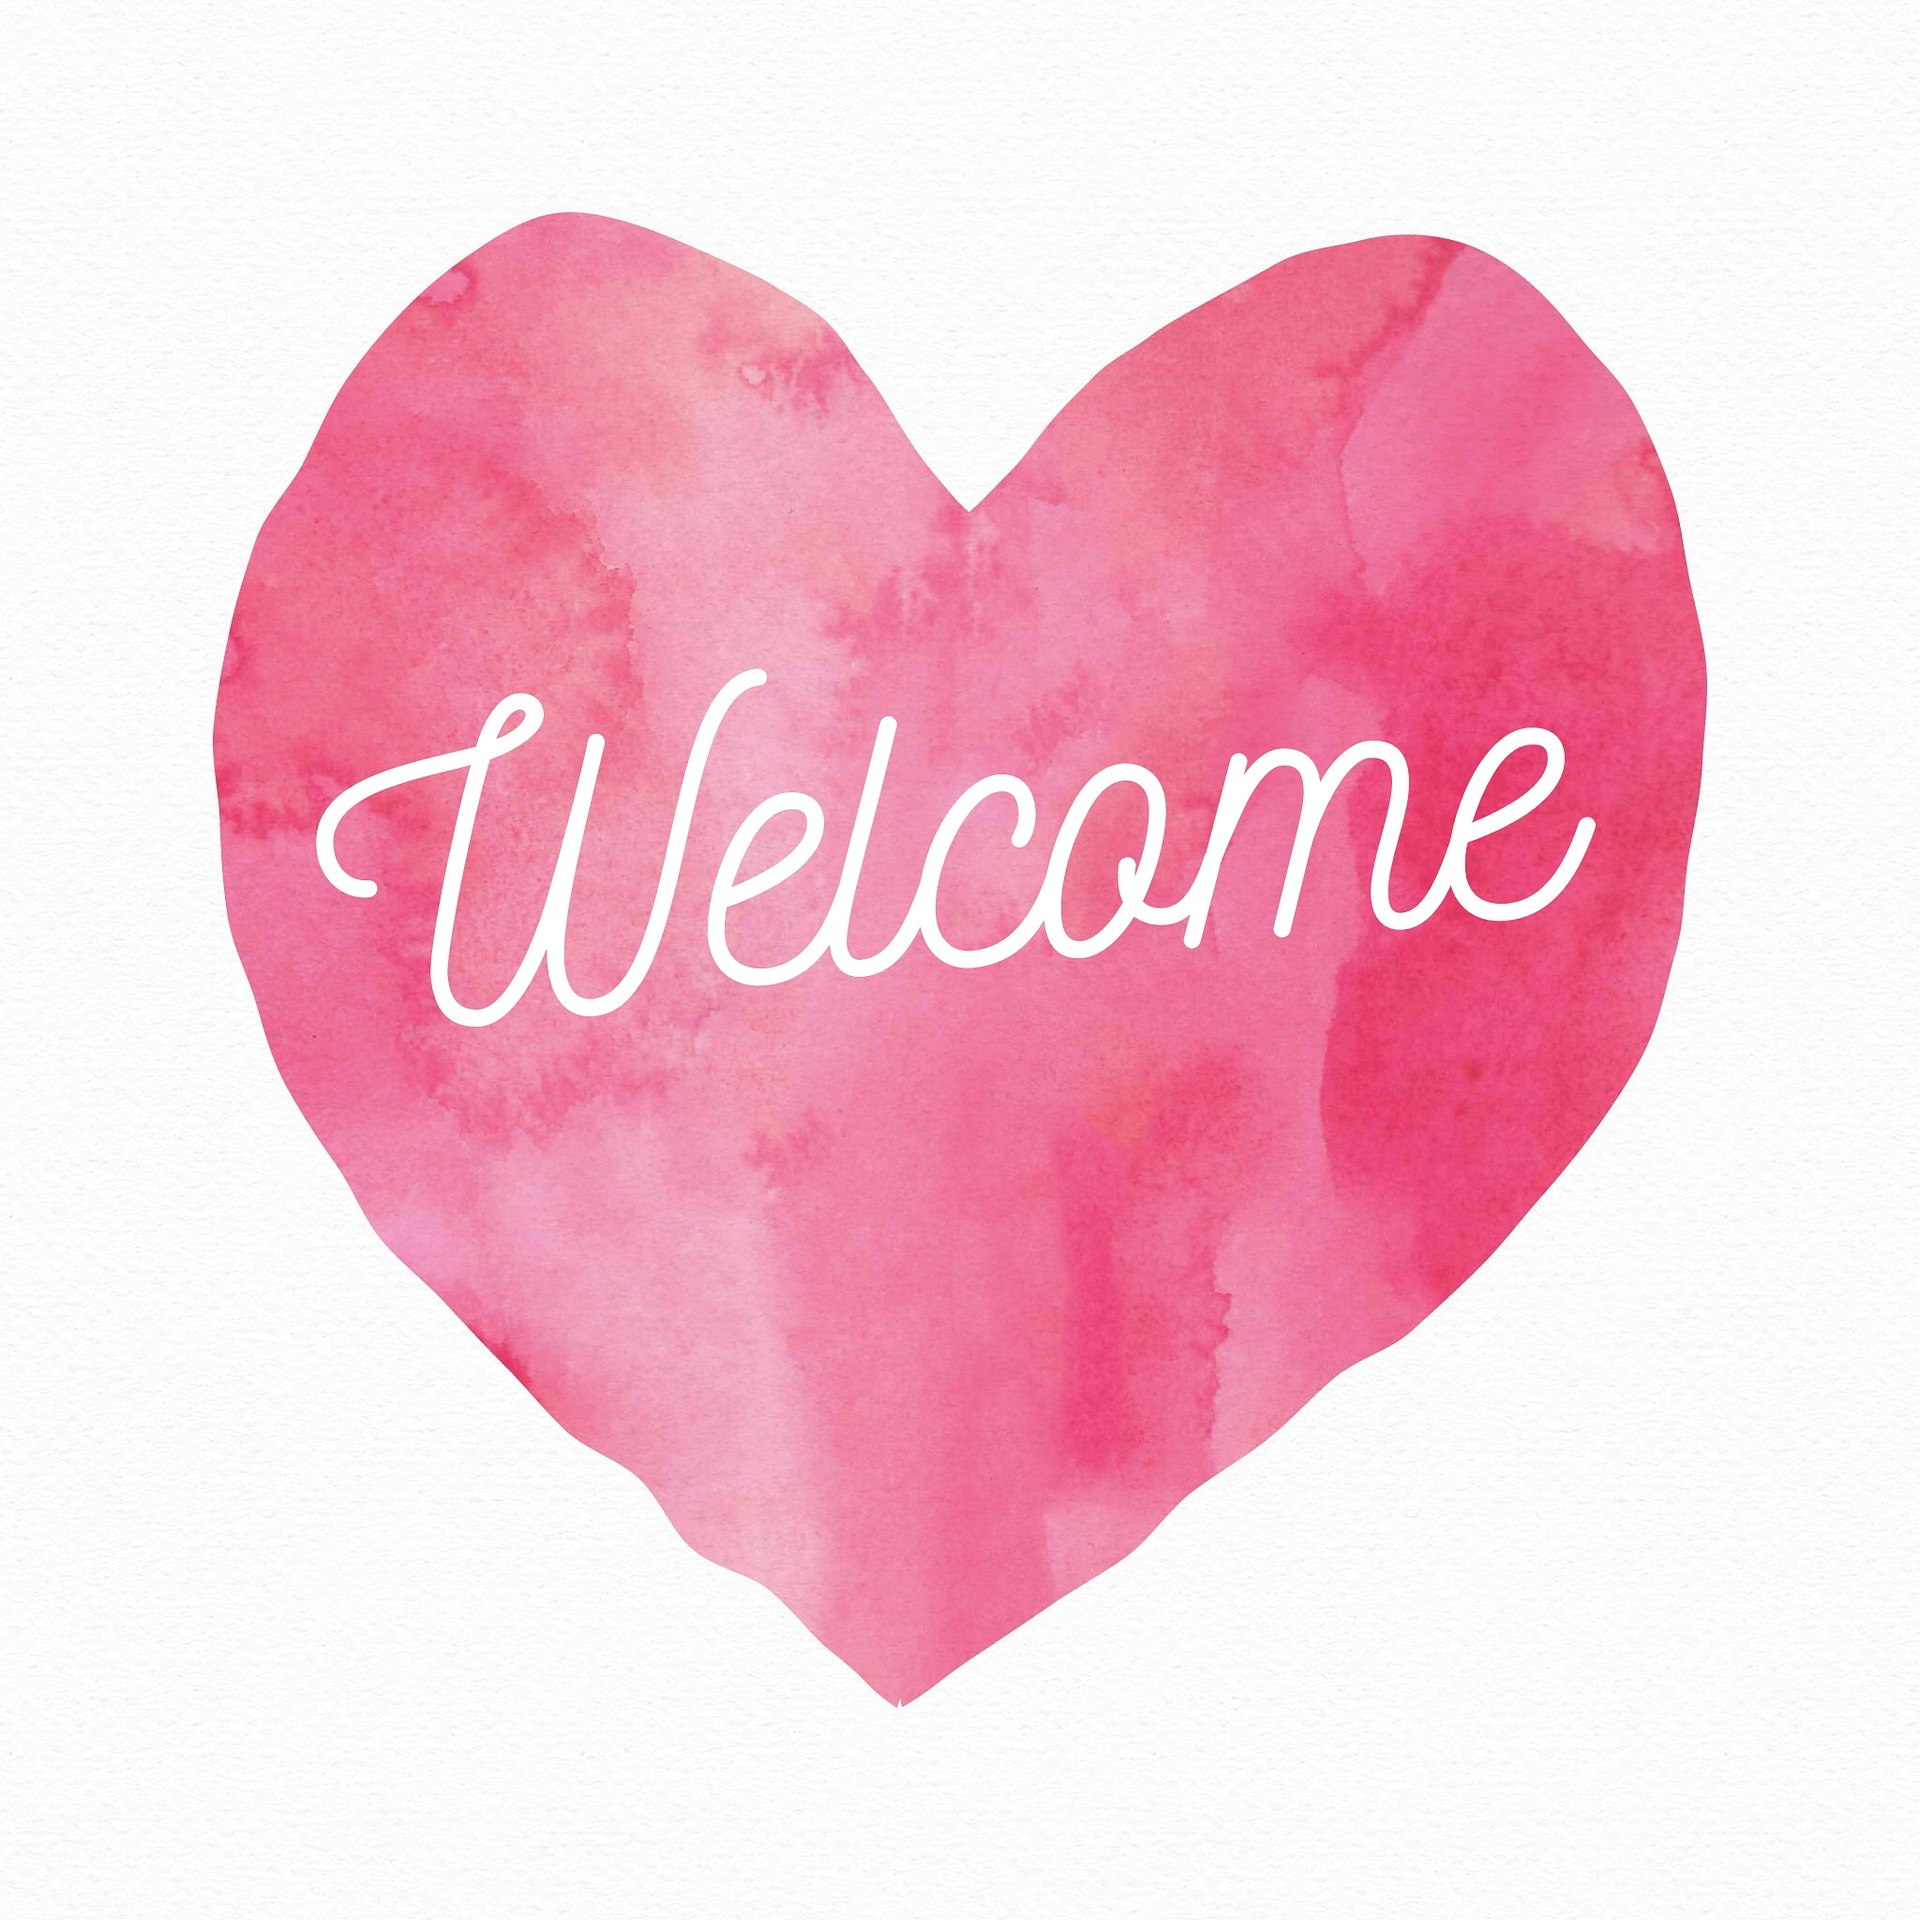 a pink heart and the word 'welcome' on top